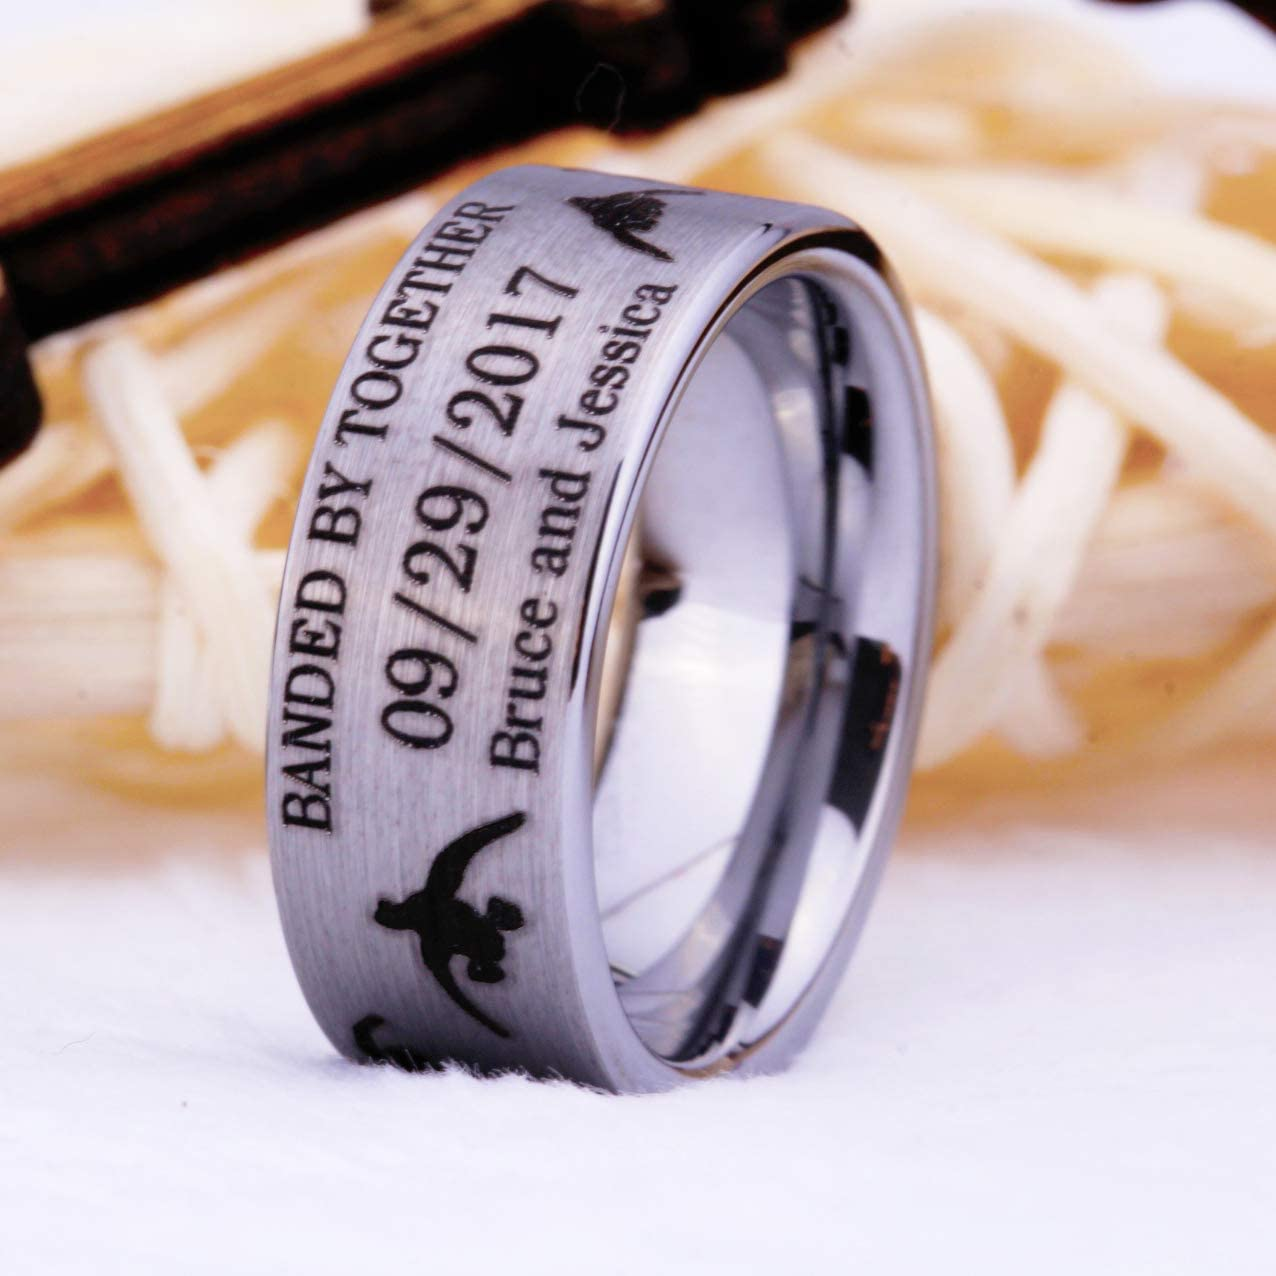 Cloud Dancer Tungsten Carbide 6mm or 8mm Pipe Satin Finish Ring Black Lasered Customizable Duck Band Design-Free Inside Engraving